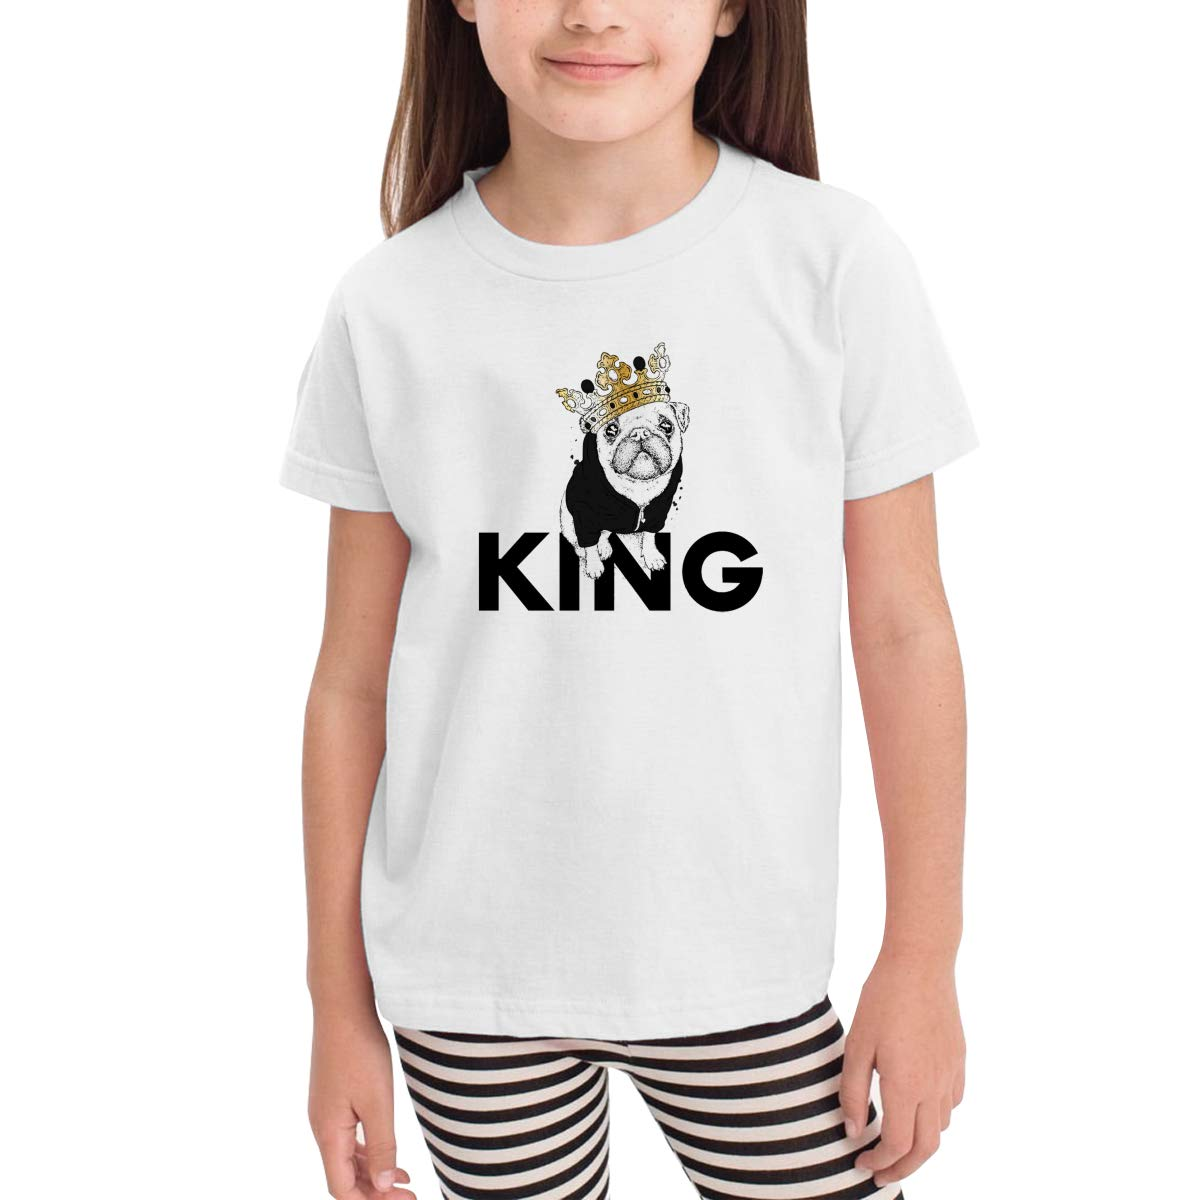 Cute Dogs Puppy King 100/% Organic Cotton Toddler Baby Boys Girls Kids Short Sleeve T Shirt Top Tee Clothes 2-6 T